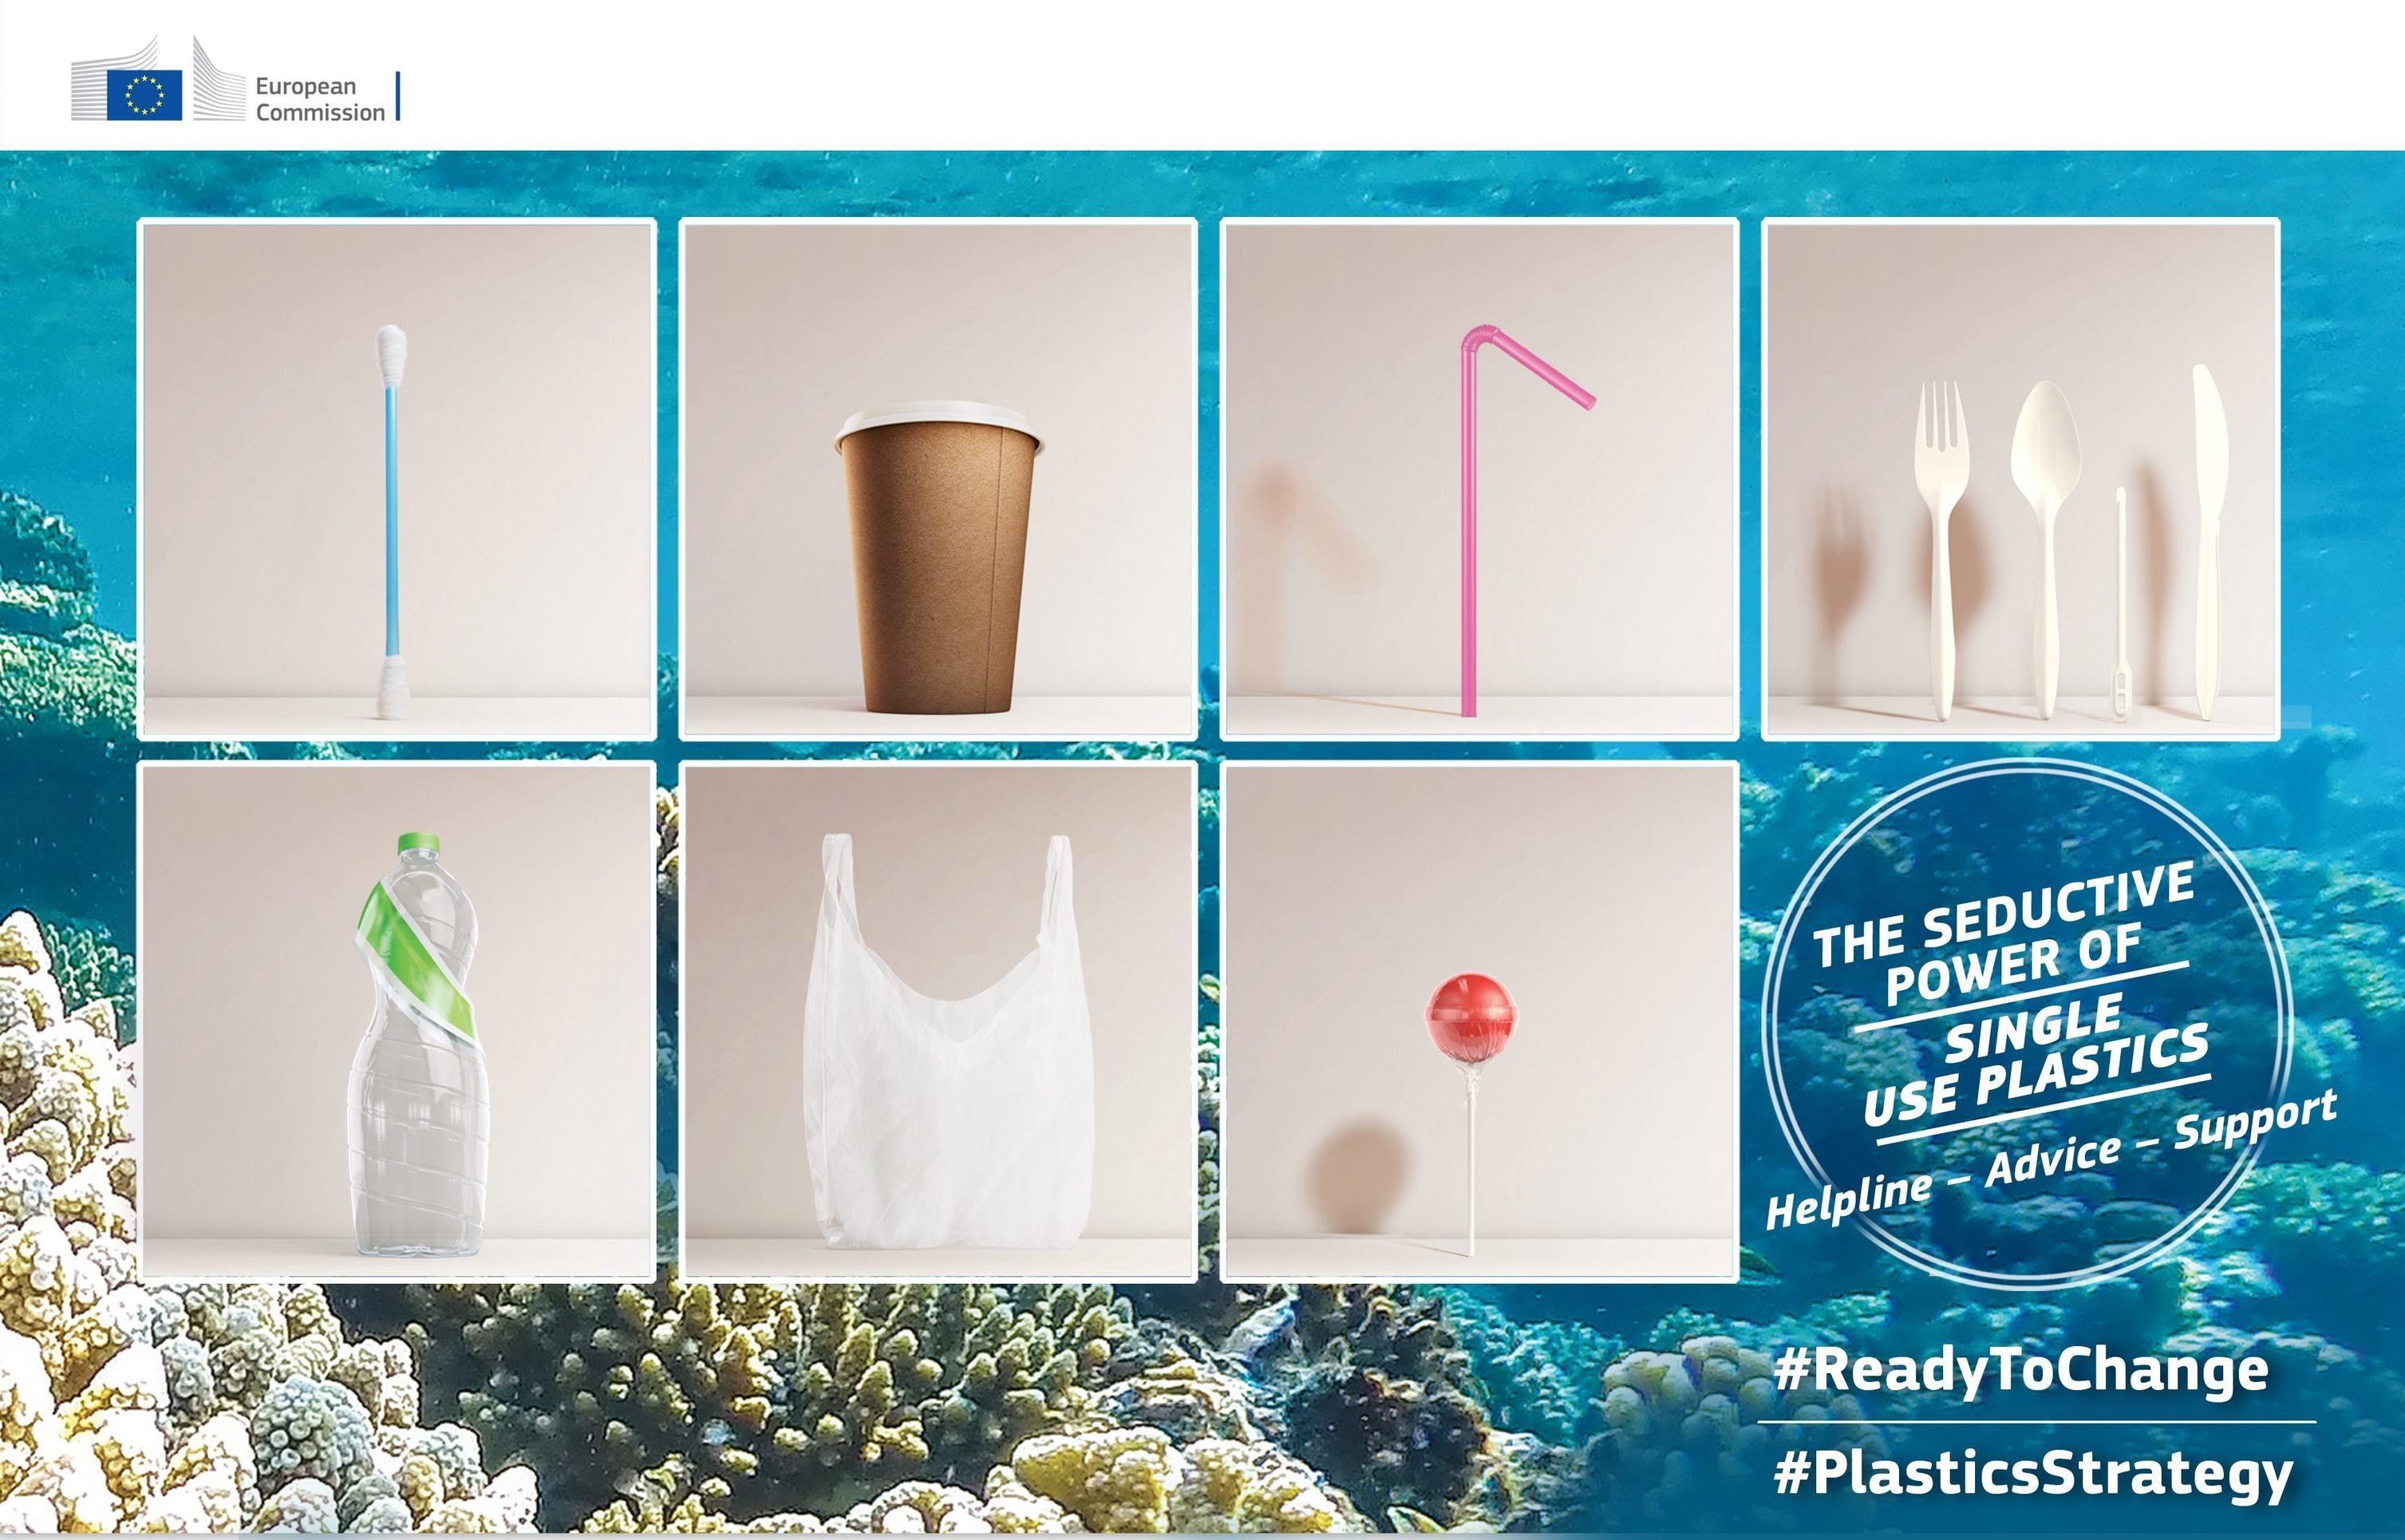 , The European Union To Ban Single-Use Plastics By 2021, The Circular Economy, The Circular Economy